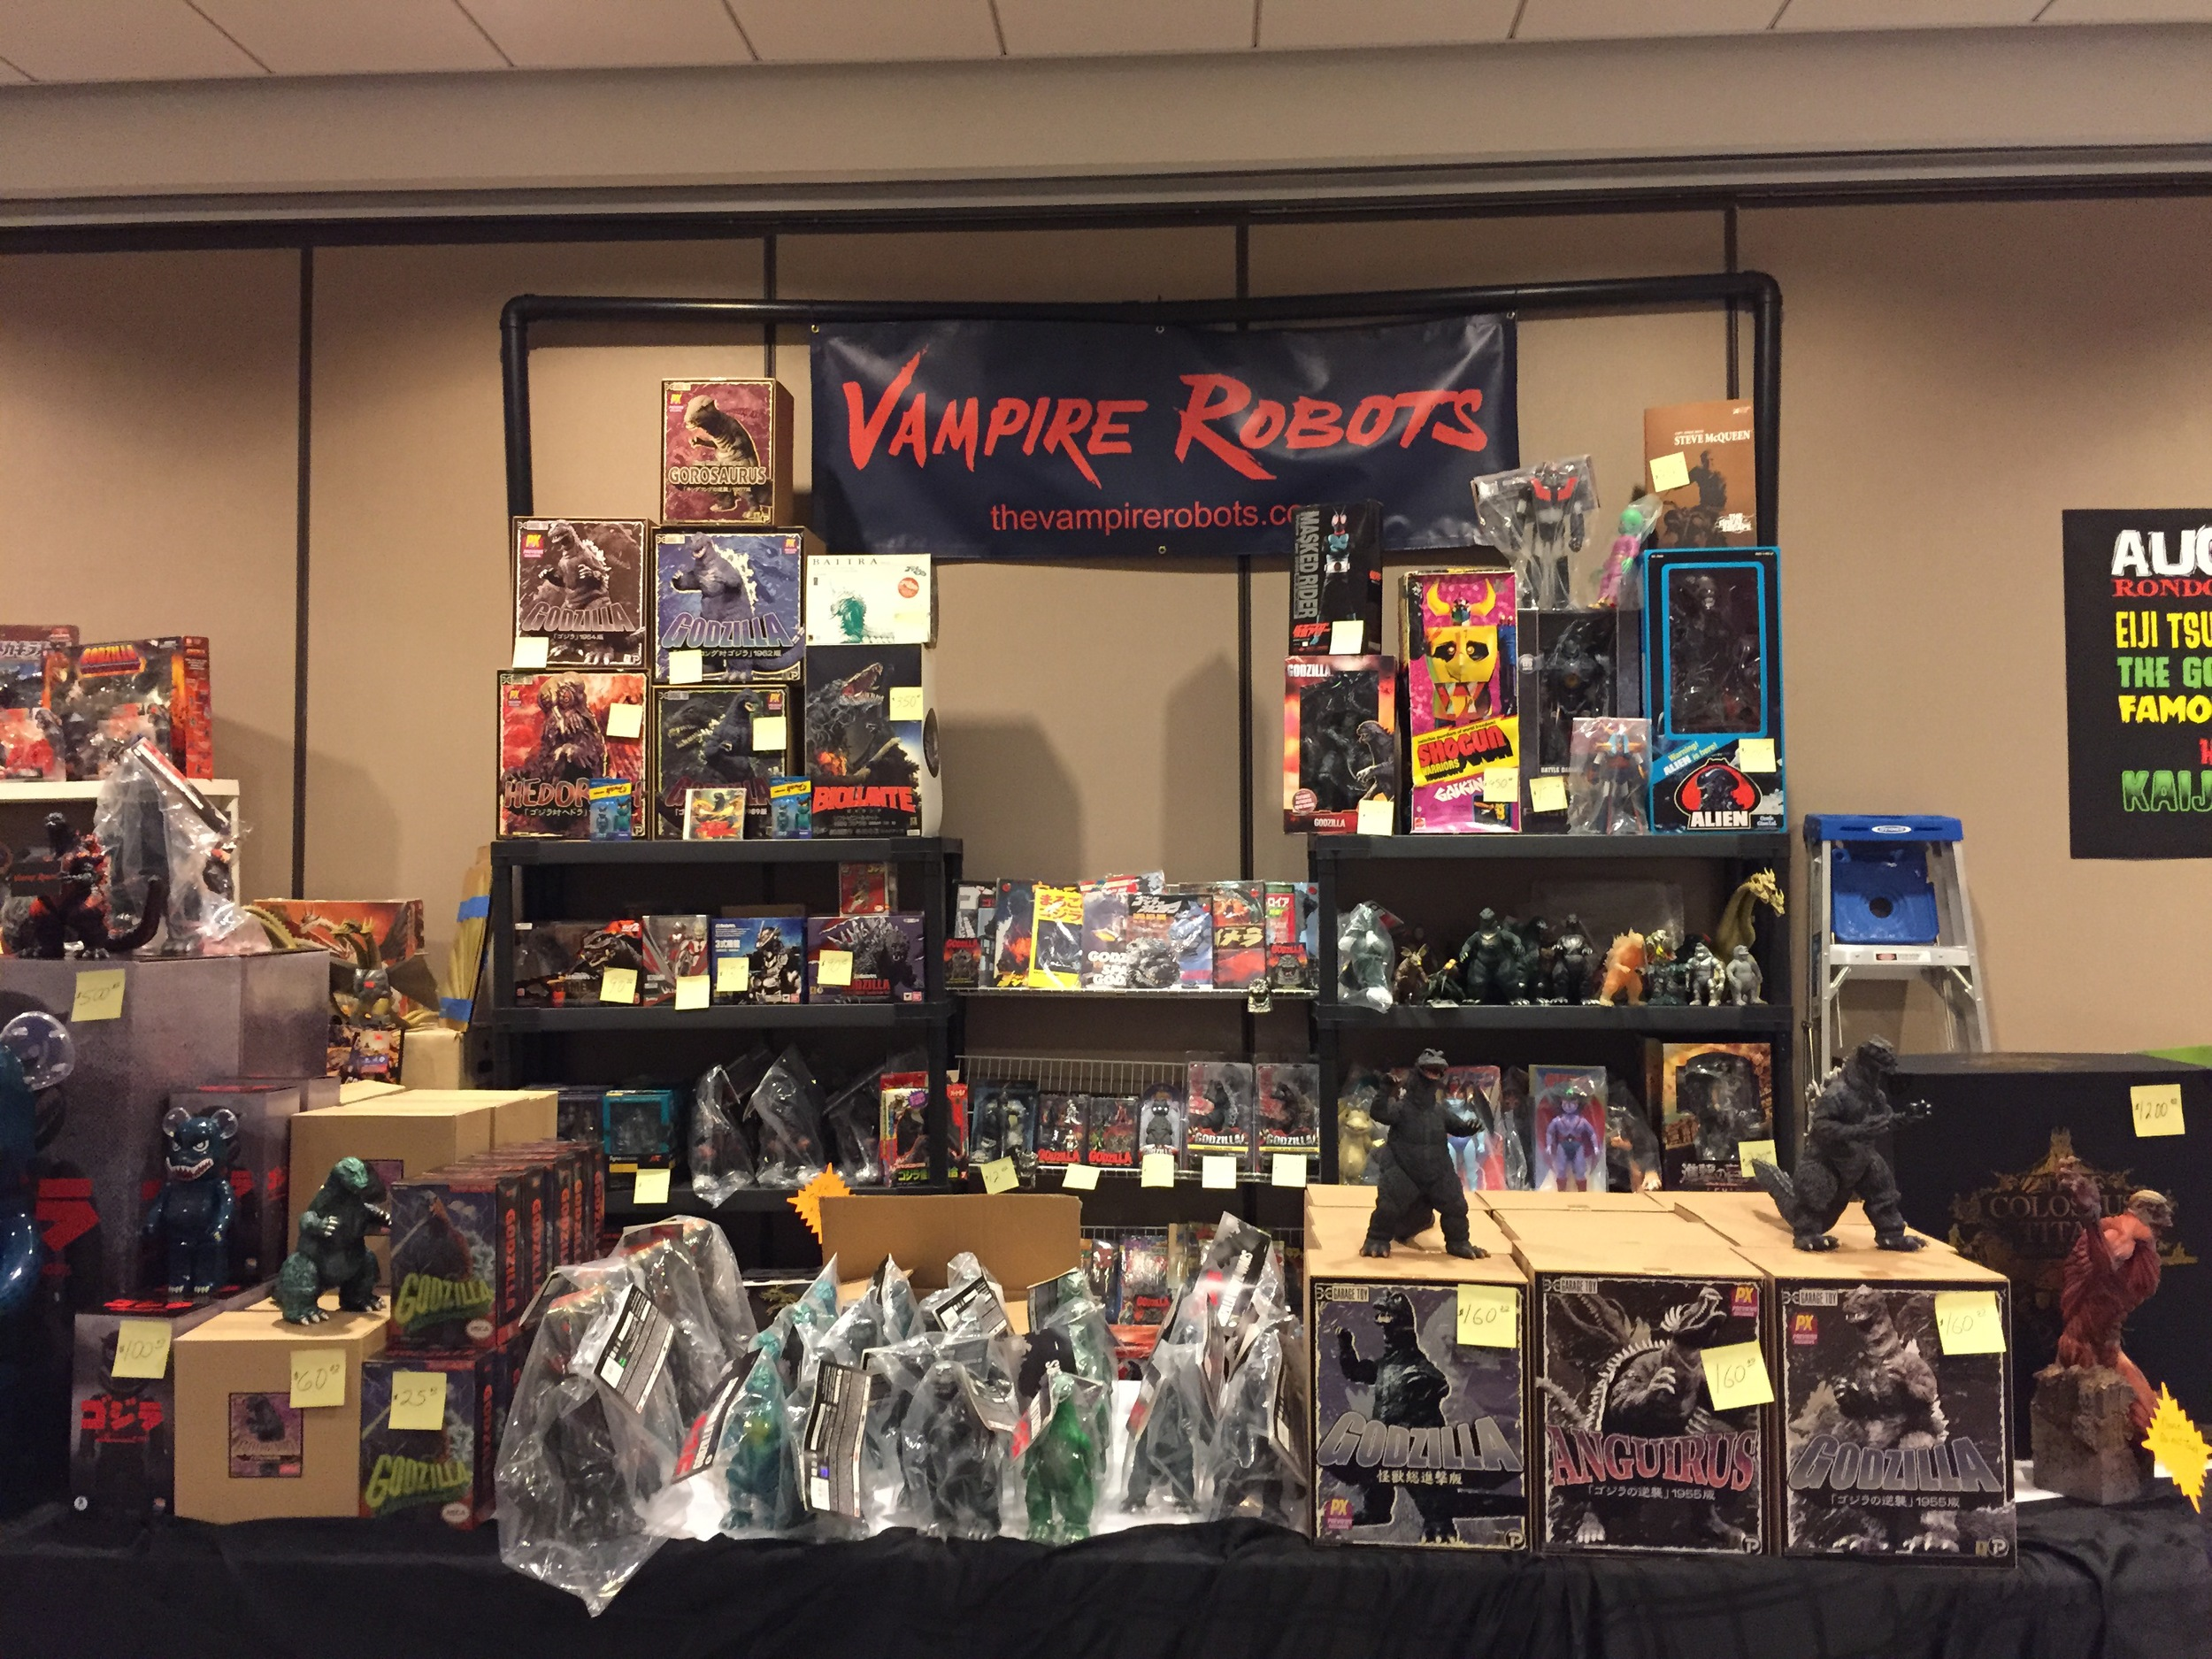 The vampire robots set up at G-Fest XXII in Rosemont IL.